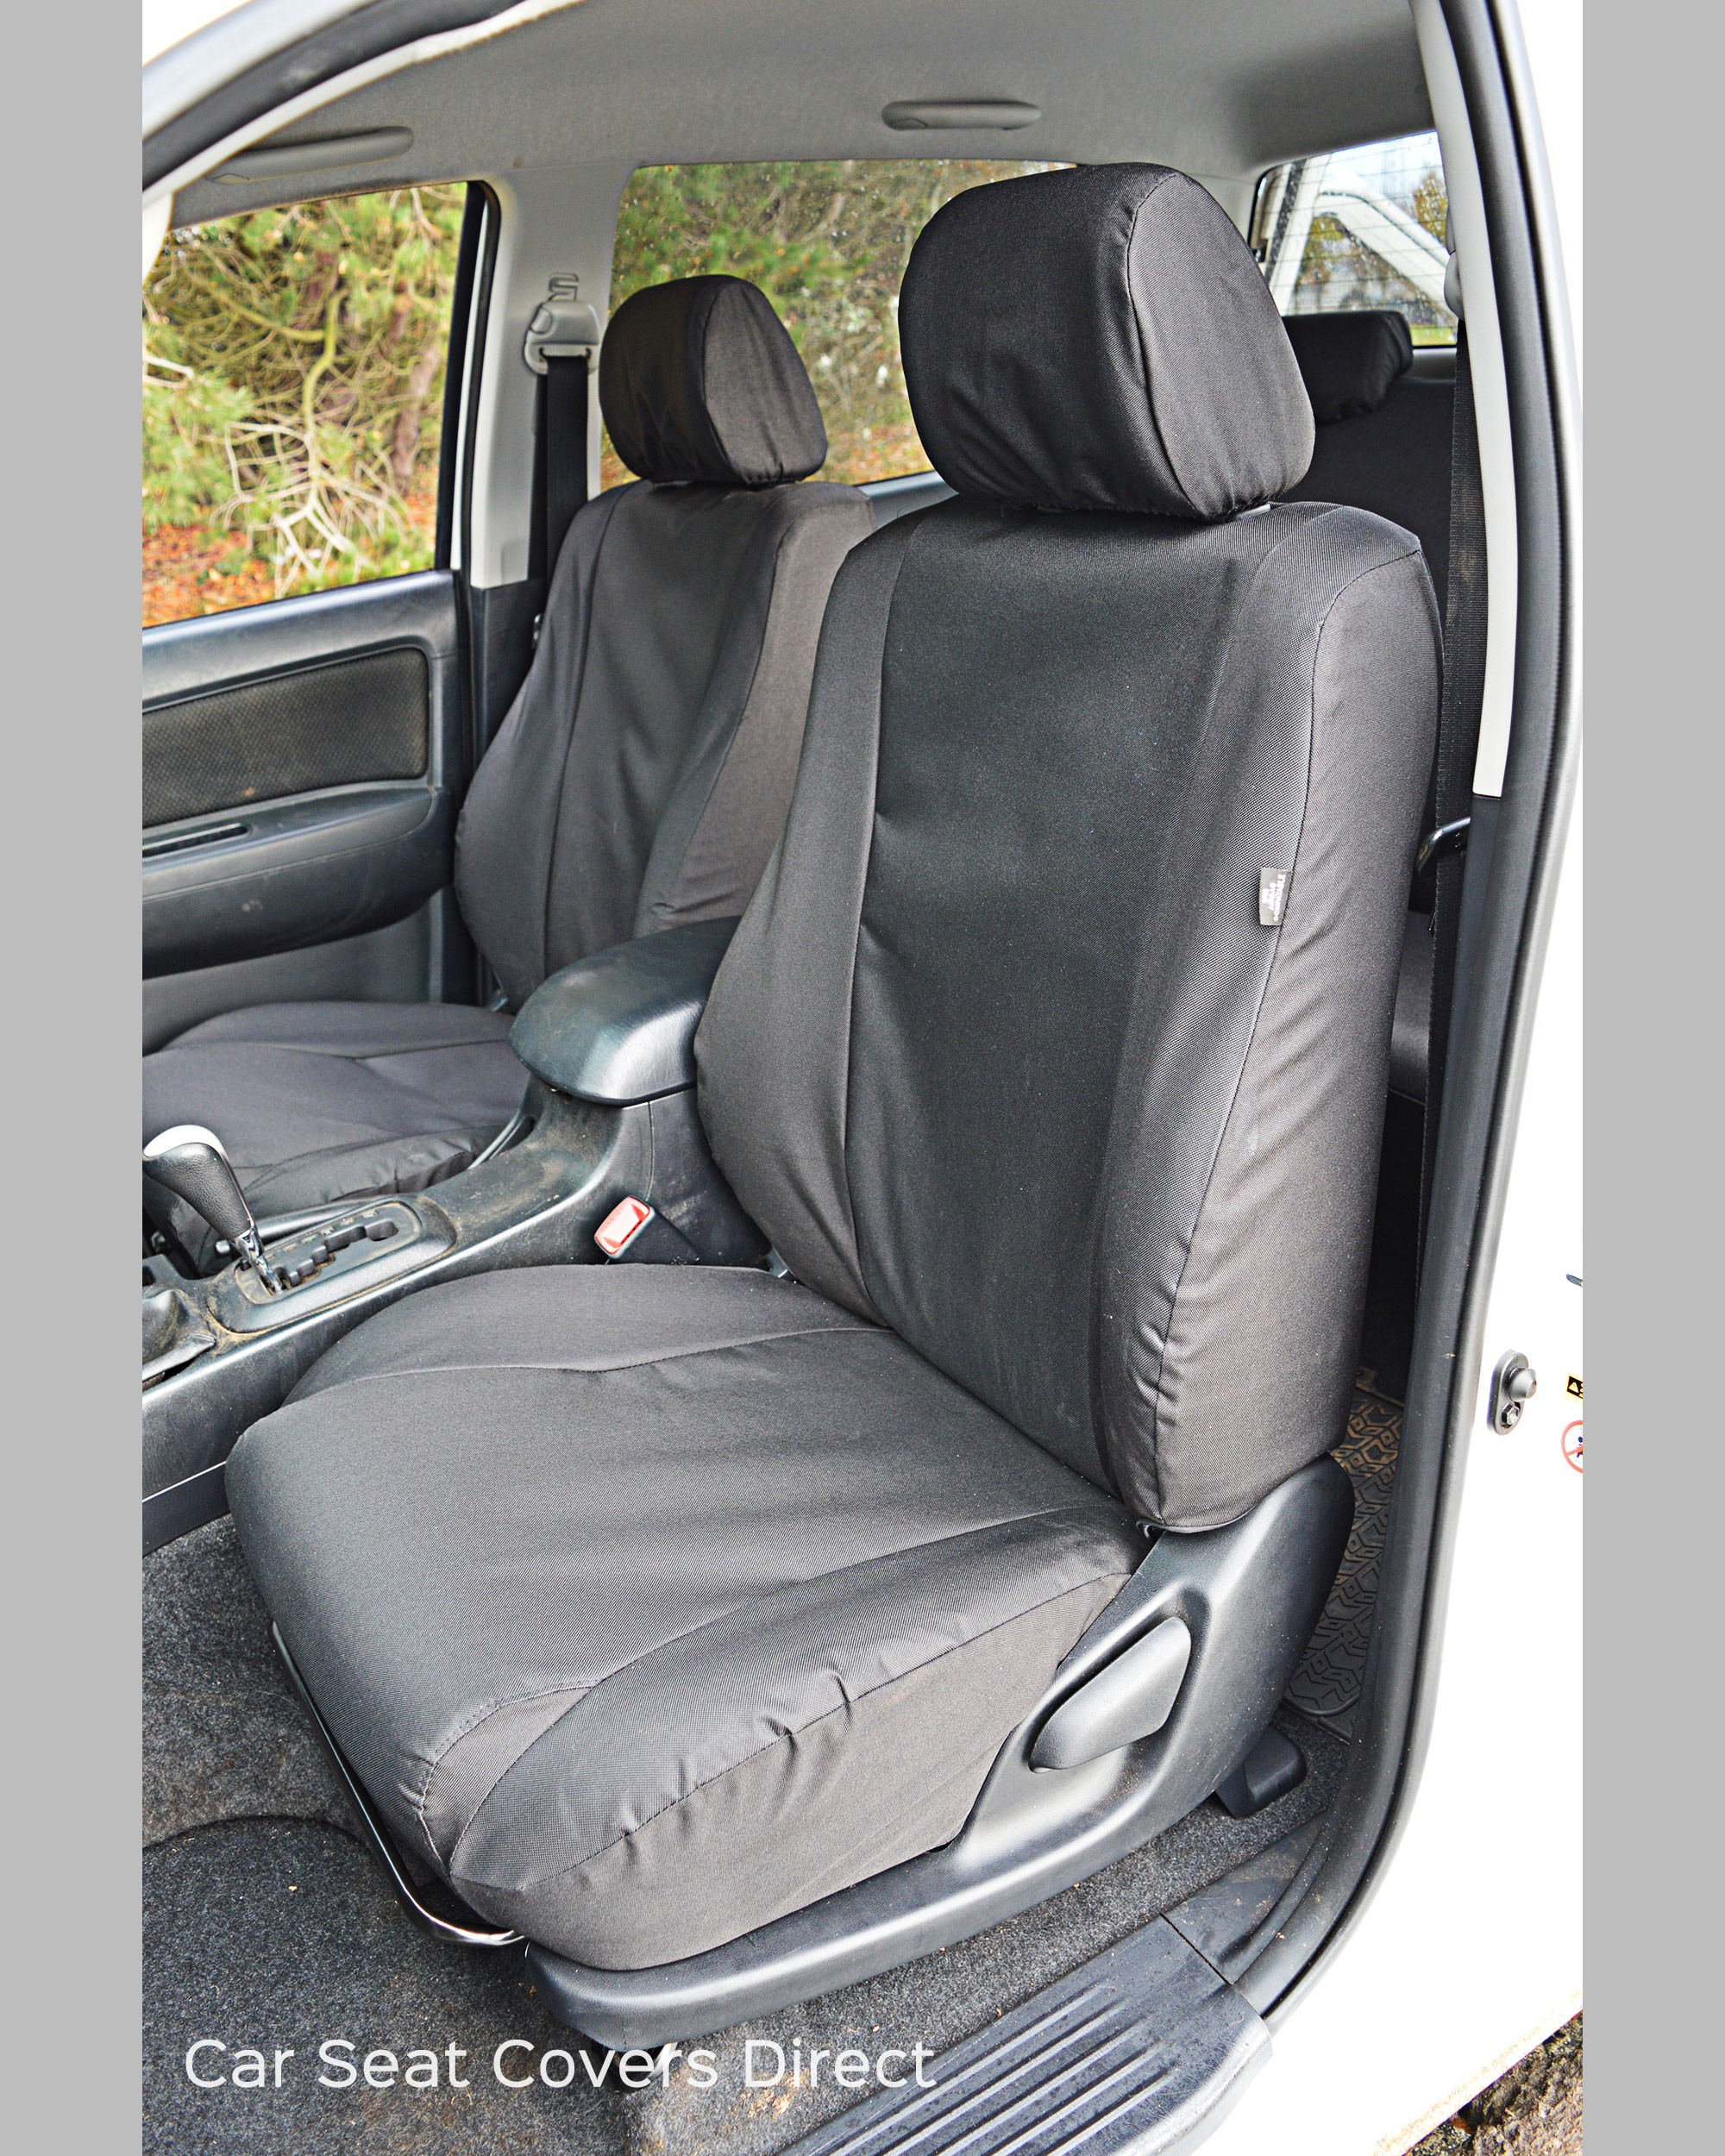 Heavy Truck Seat Covers : Toyota hilux heavy duty protective seat covers car